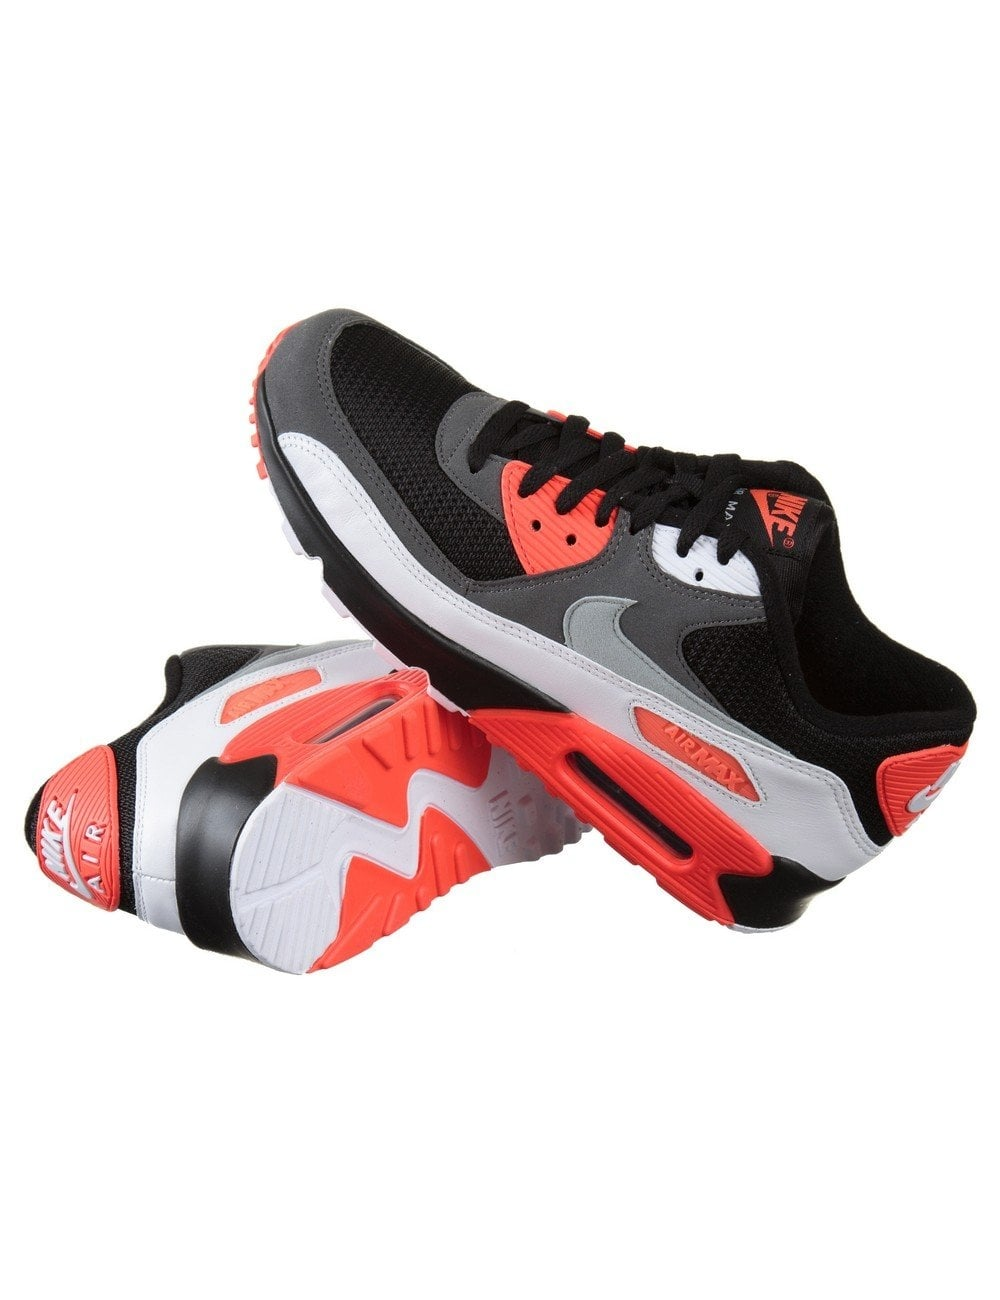 Nike Air Max 90 OG Shoes Infrared Black Footwear from